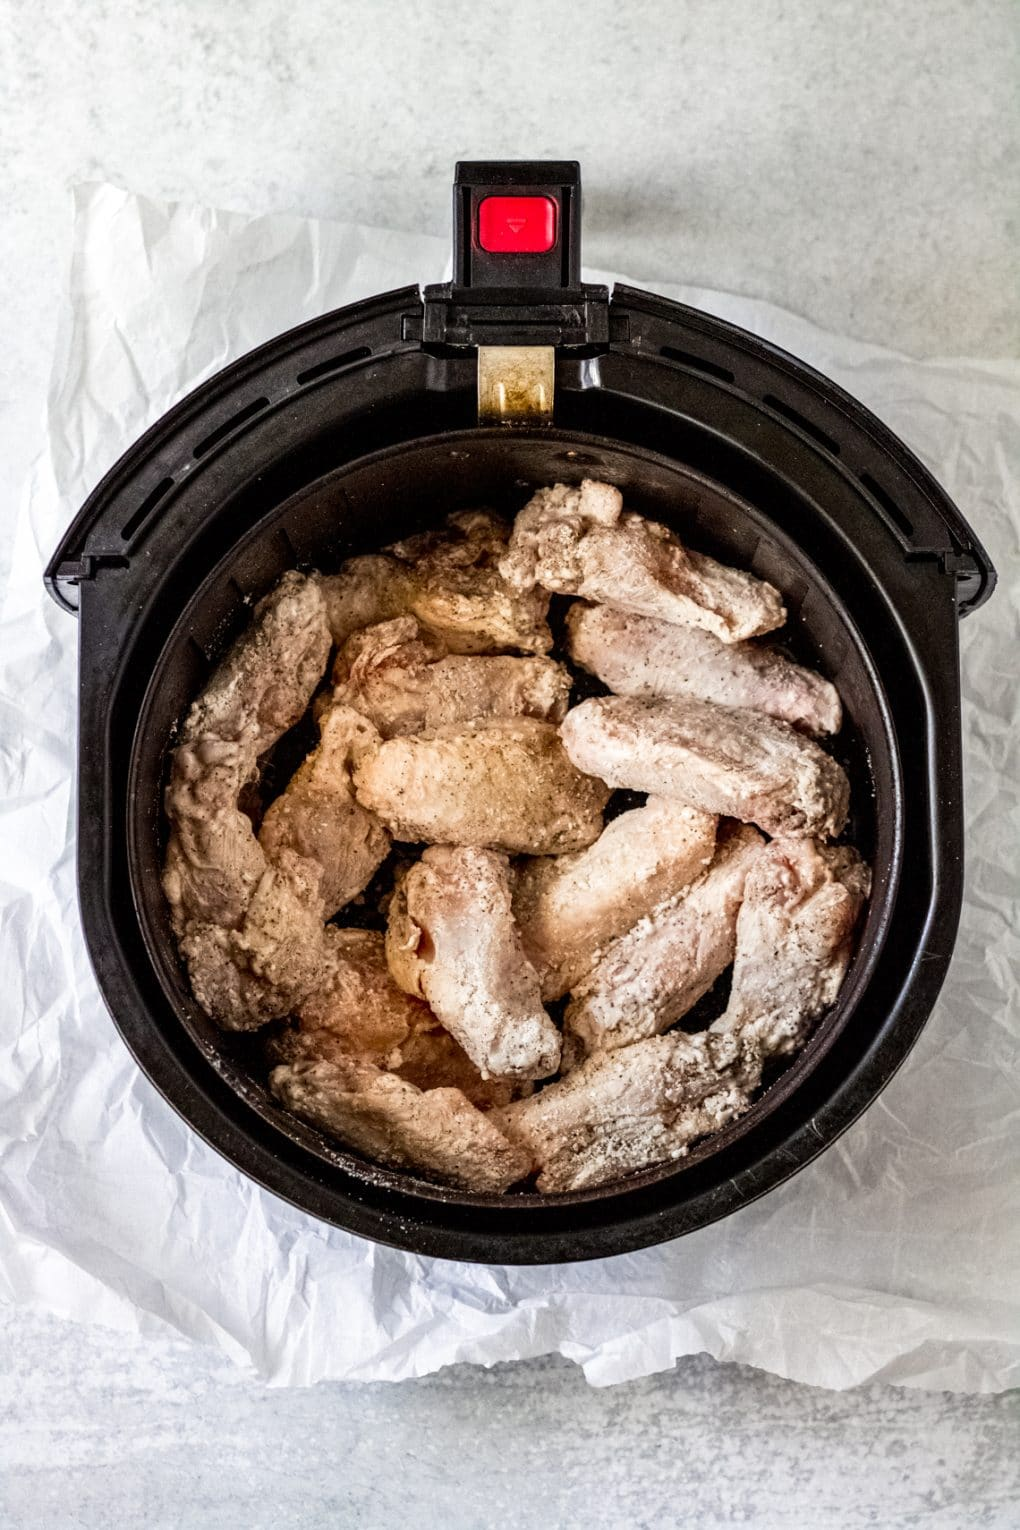 chicken wings cooking in an air fryer basket